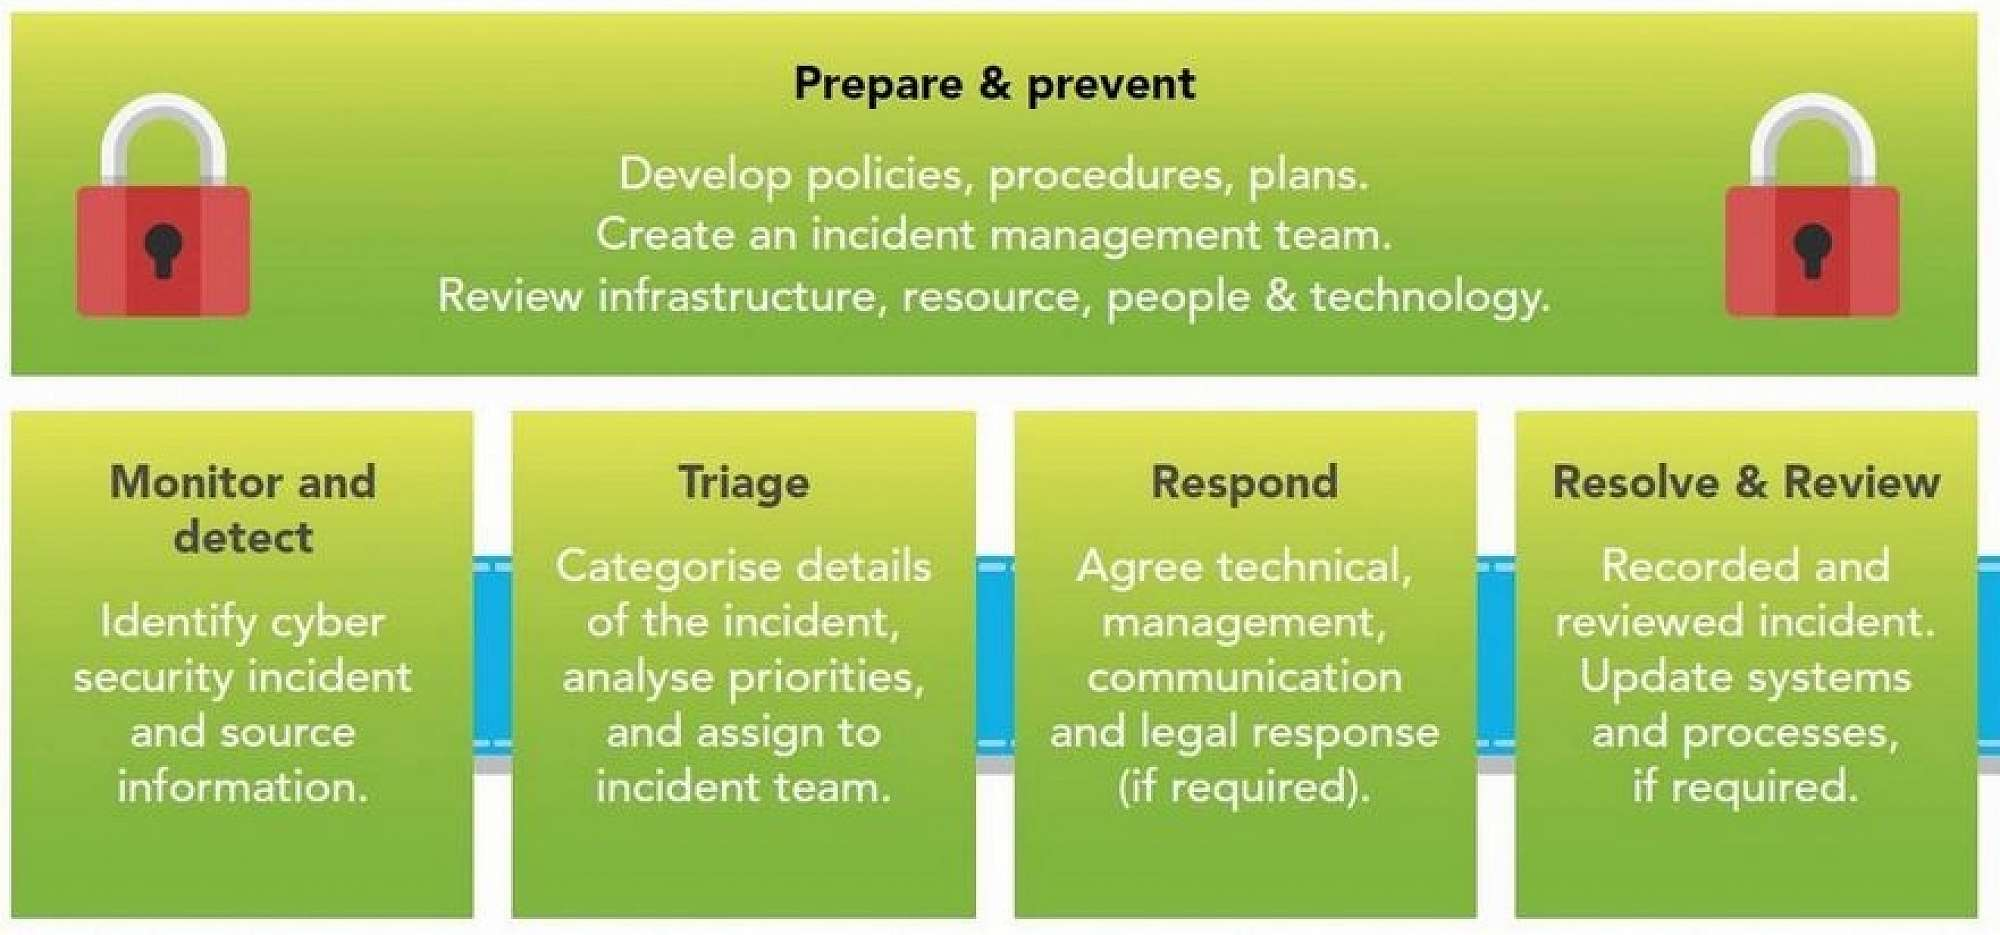 establish-incident-management-plan.jpg